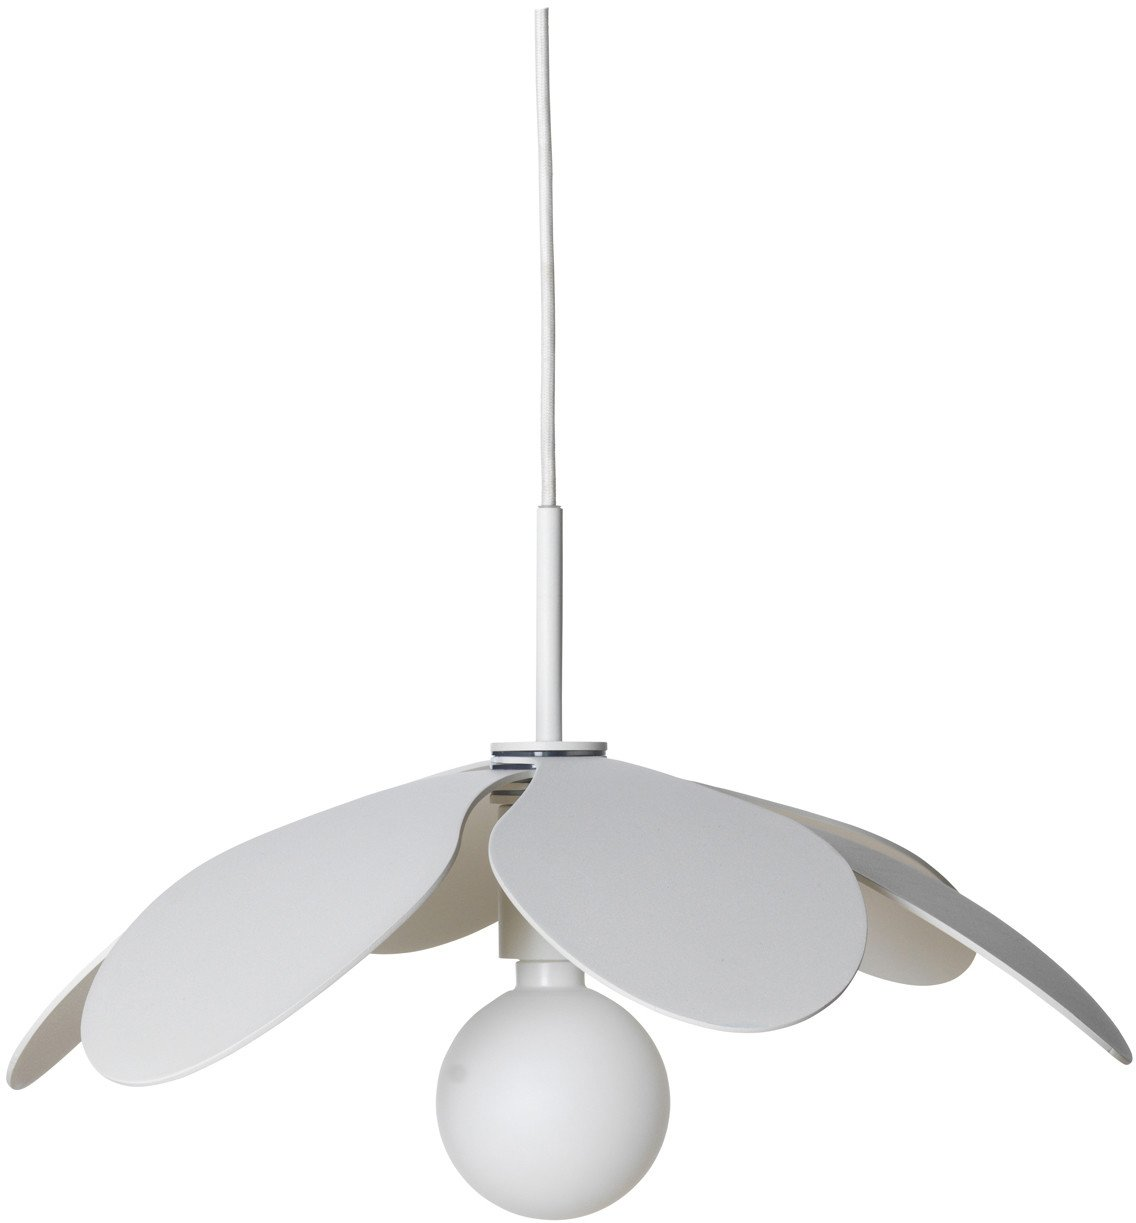 Bloom Pendant Lamp White 30 by M. Mulder for Pholc